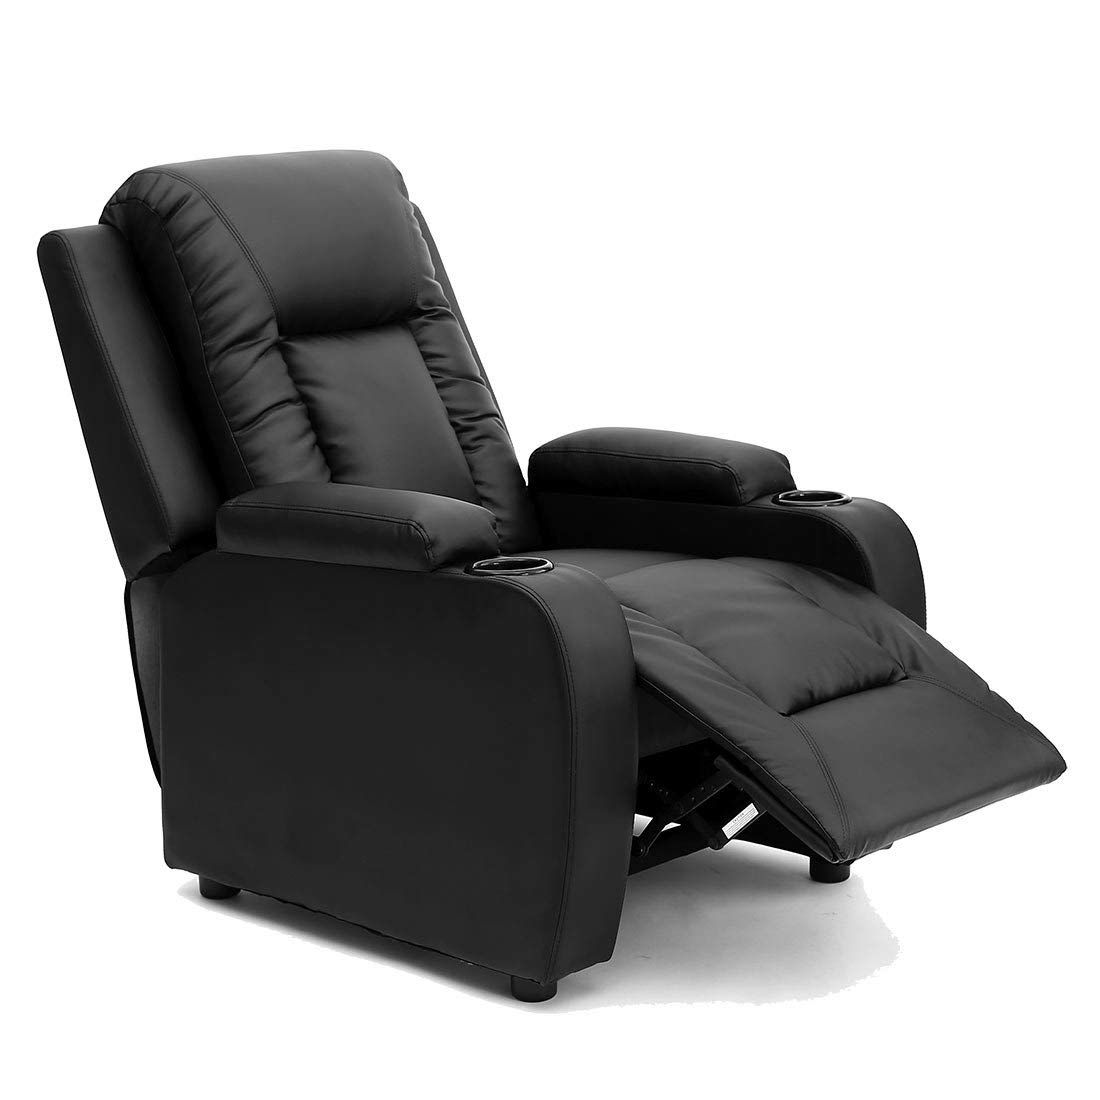 More4Homes OSCAR BONDED LEATHER RECLINER w DRINK HOLDERS